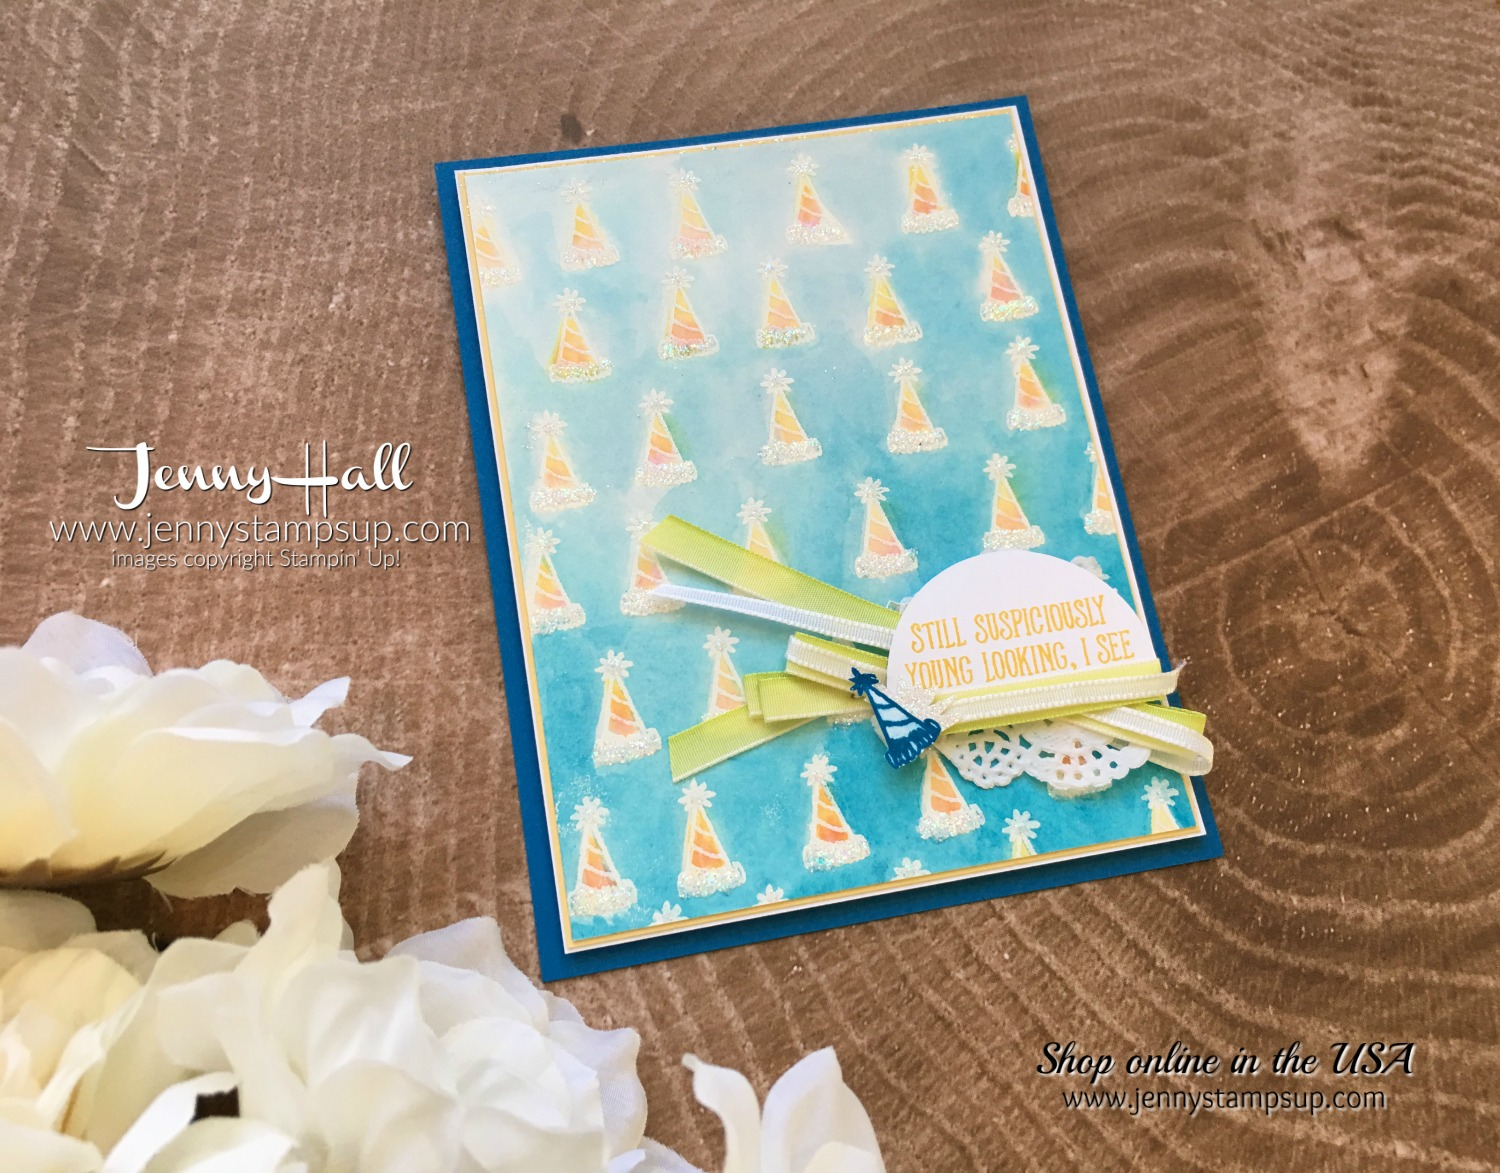 Anything but a Christmas Card by Jenny Hall at www.jennystampsup.com for cardmaking, scrapbooking, video tutorials and more!